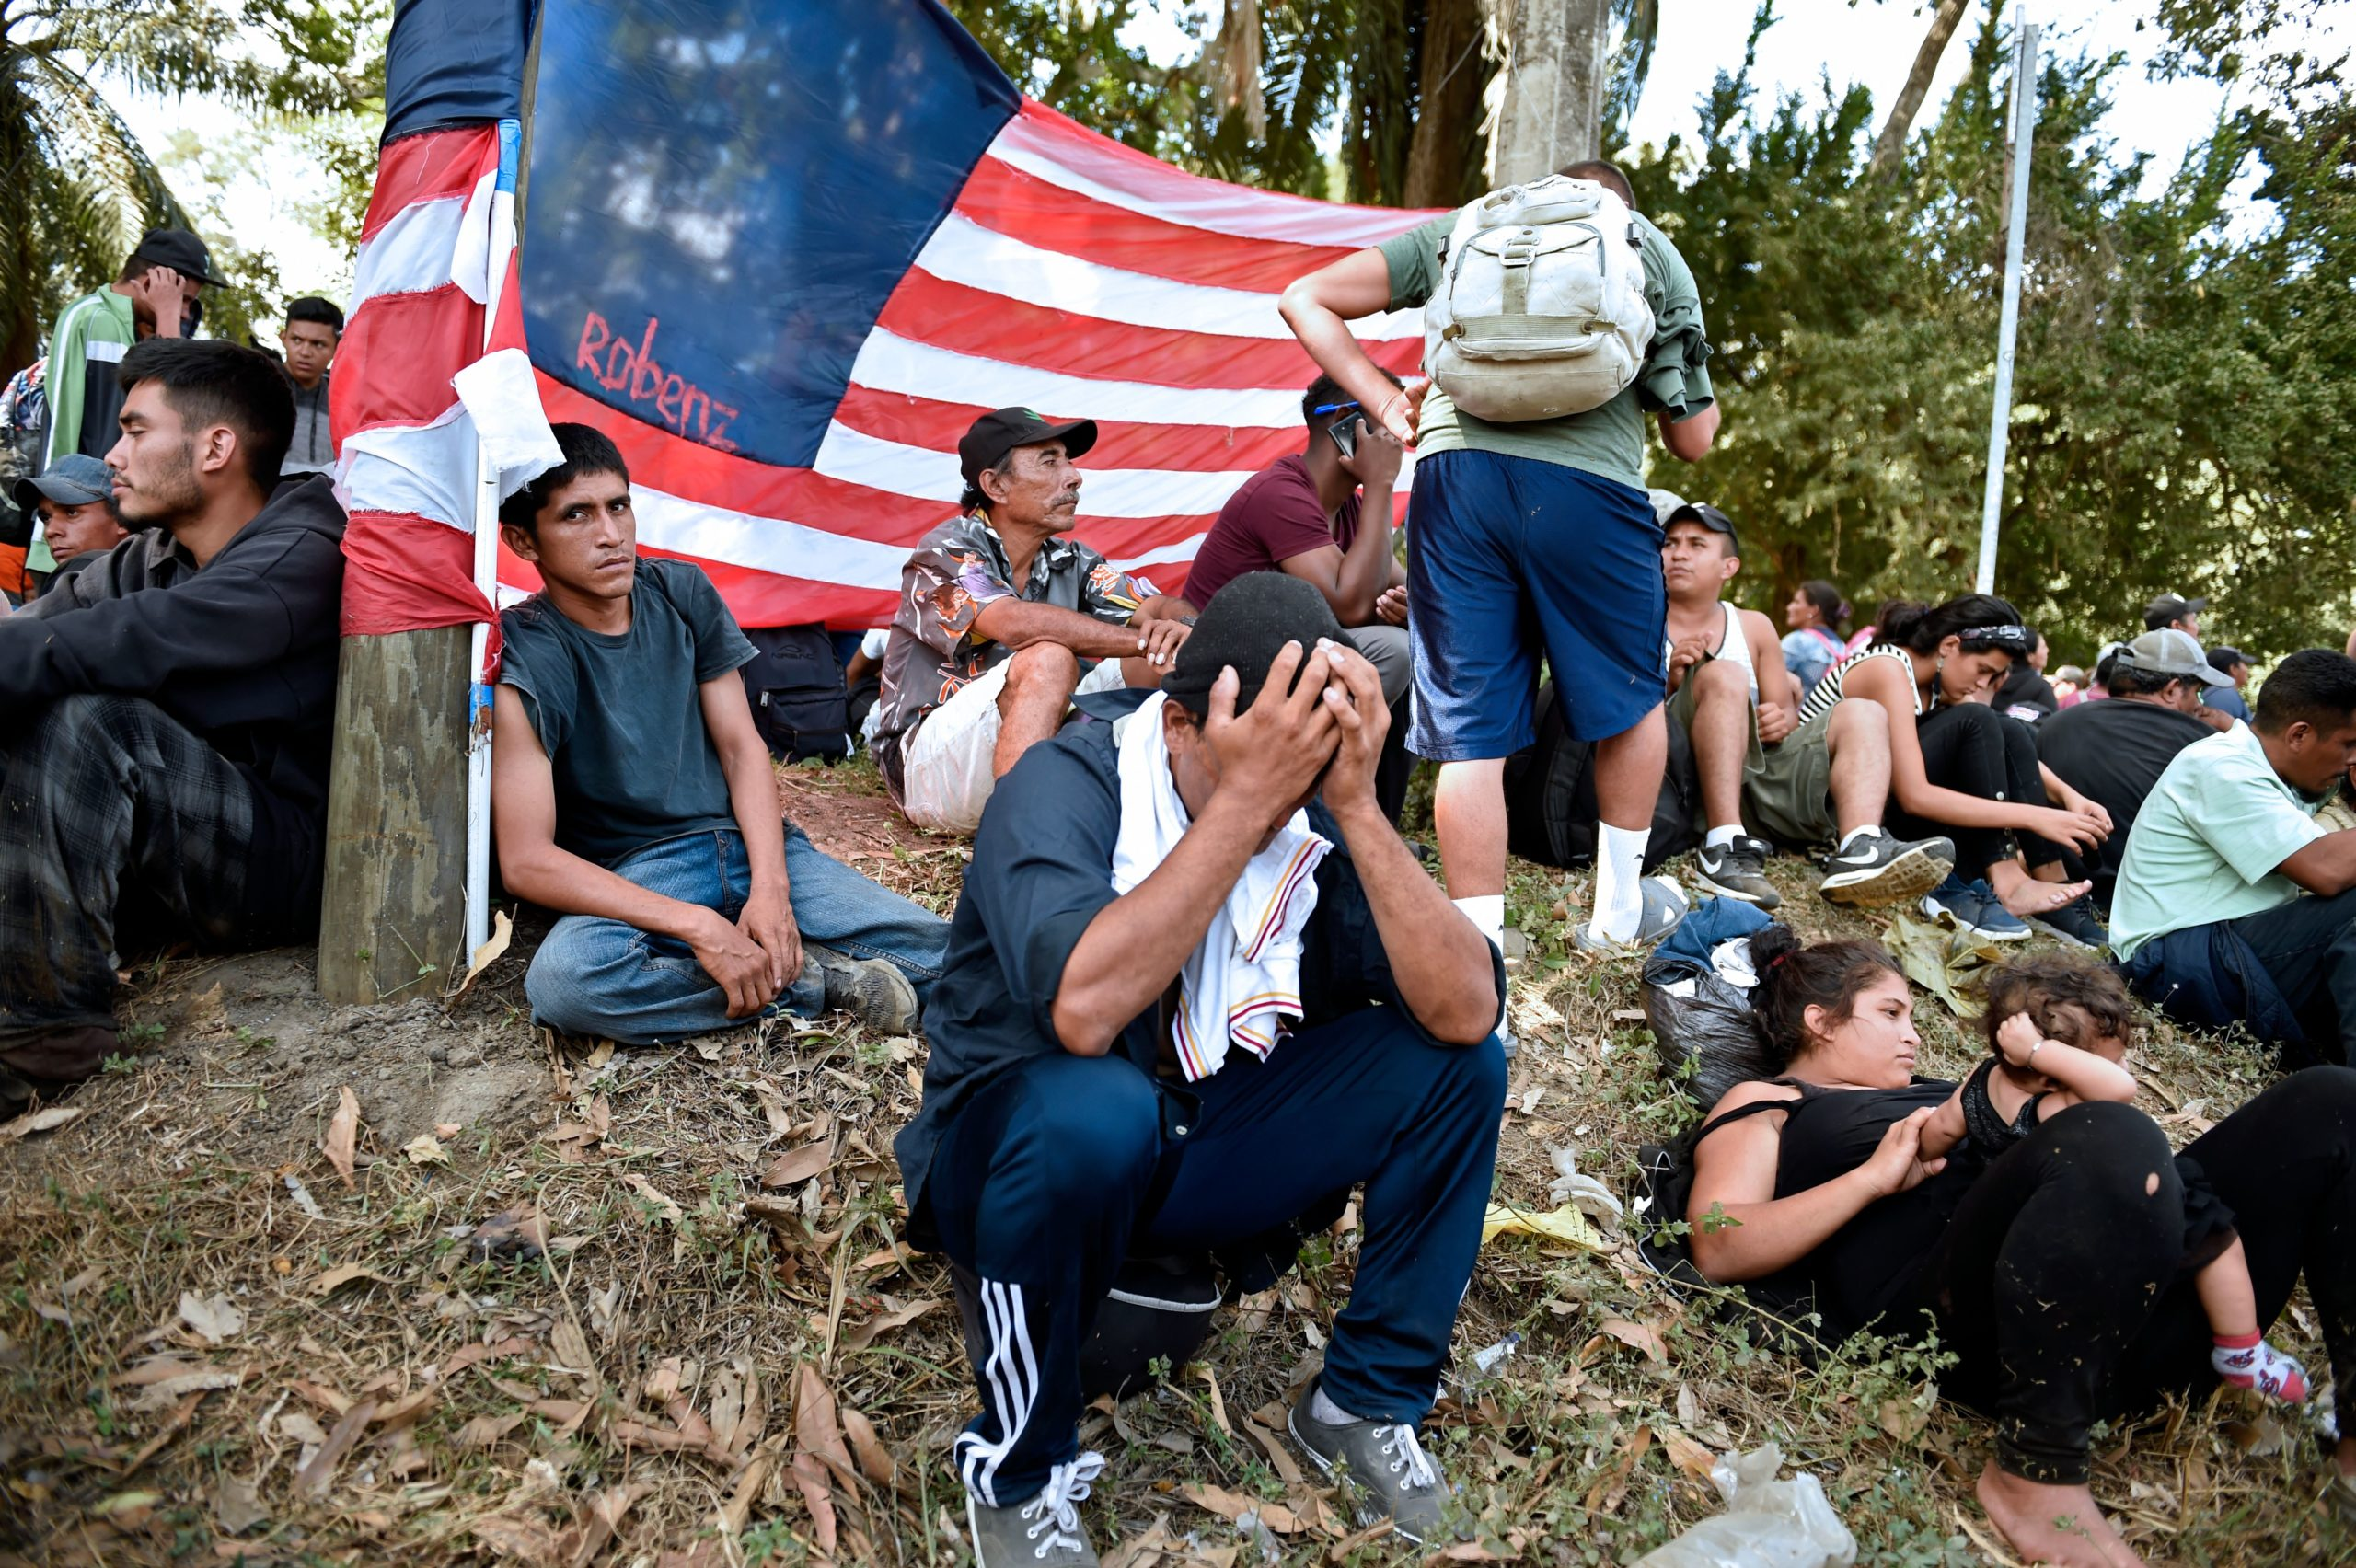 Central American migrants - mostly Hondurans heading in a caravan to the US - rest next to a US flag on their way from Ciudad Hidalgo to Tapachula, Chiapas State, Mexico, on January 23, 2020. (Photo by ALFREDO ESTRELLA/AFP via Getty Images)